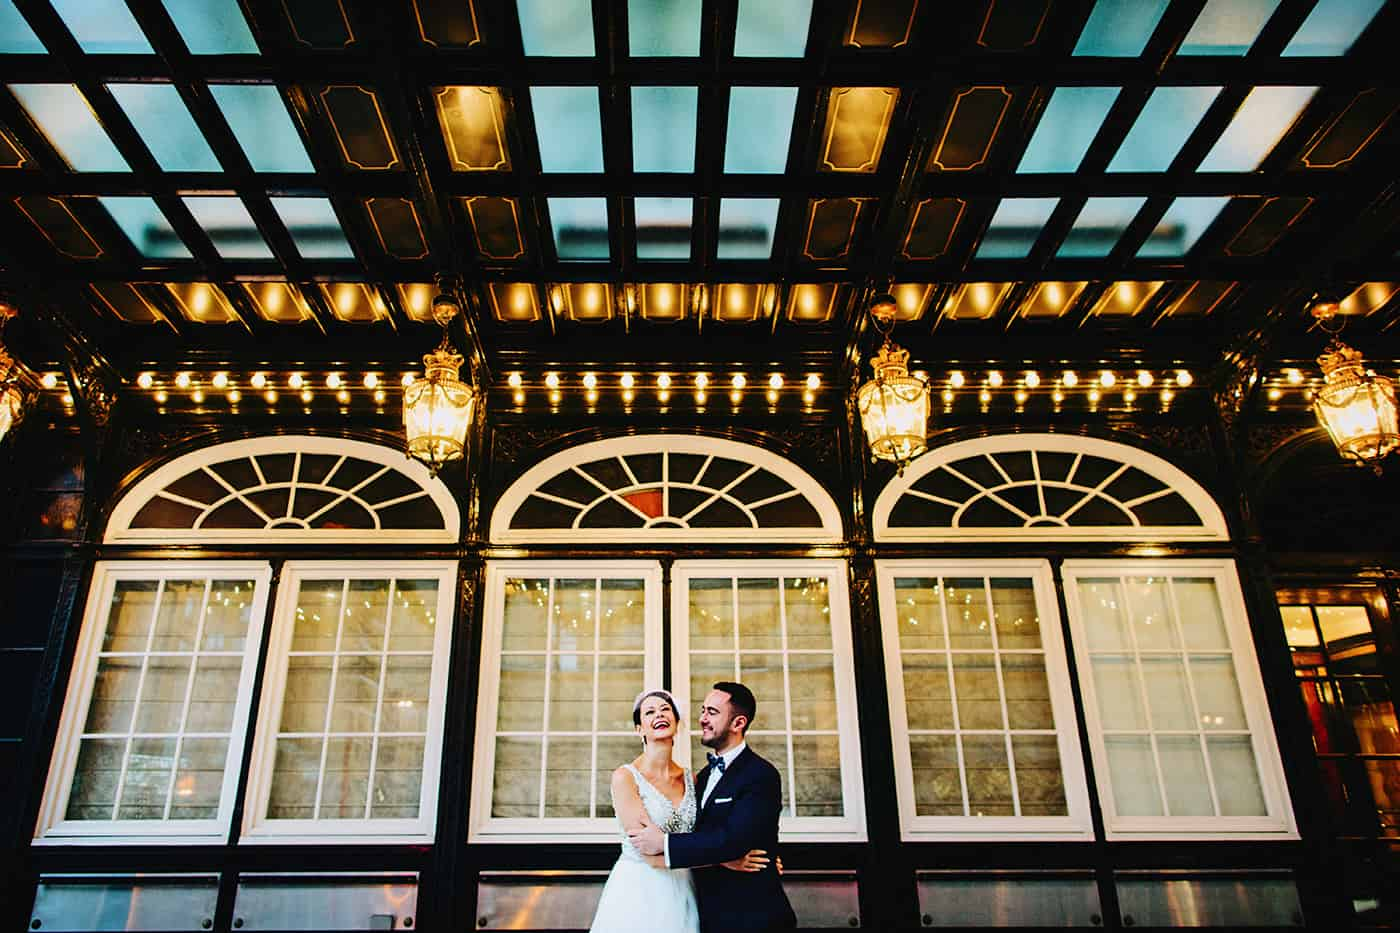 A wedding photograph taken in front of the Ritz Carlton in Montreal